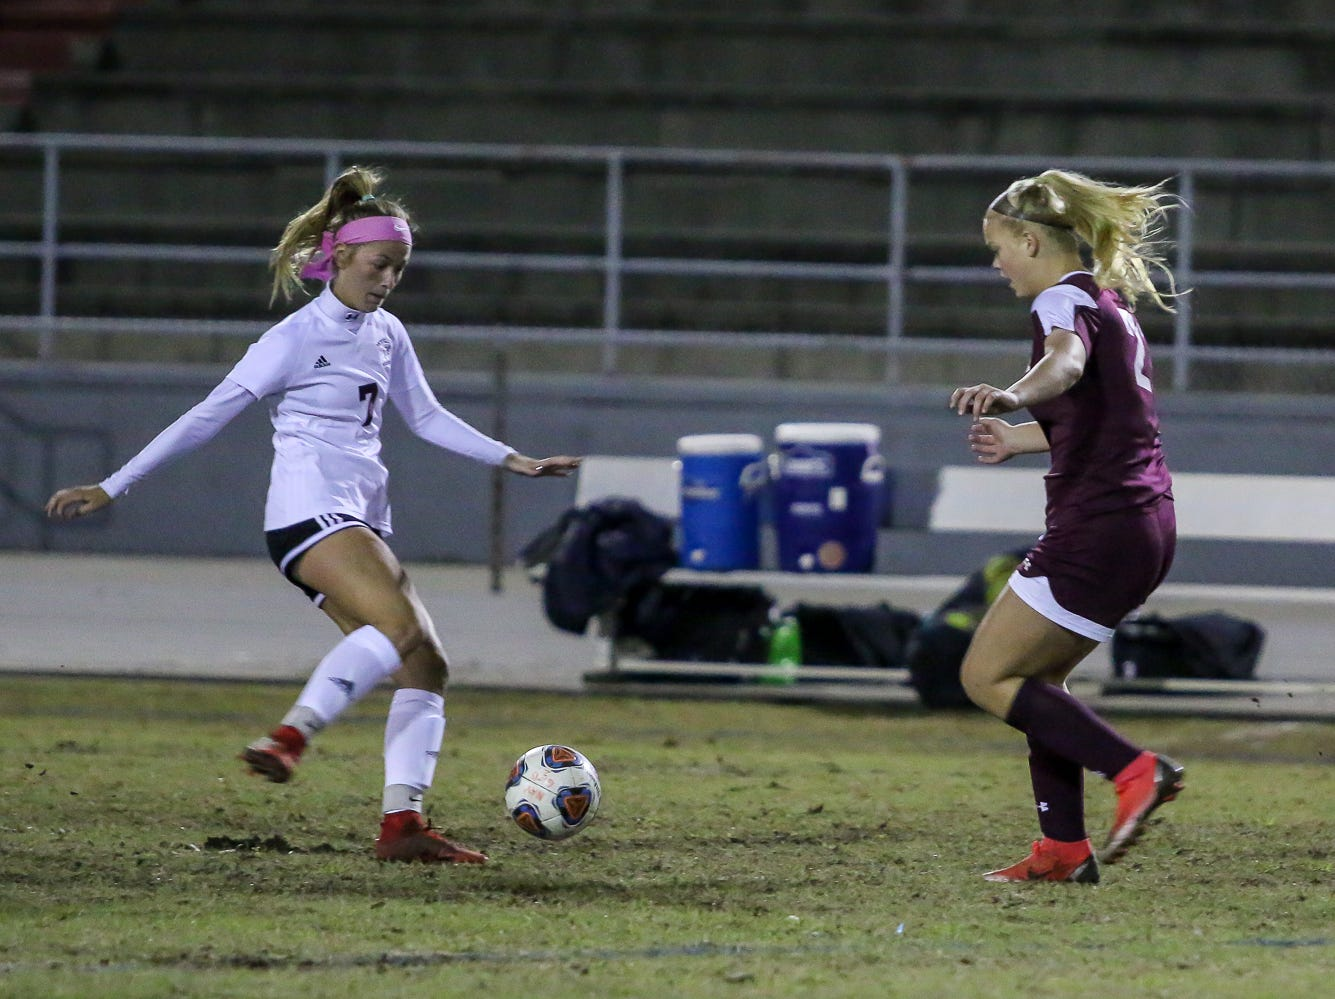 Navarre's Hunter Wallace (21) takes on Niceville's Avery Hanson (7) in a District 1-4A showdown of unbeaten teams at Navarre High School on Tuesday, December 4, 2018. The game ended in a 1-1 tie.